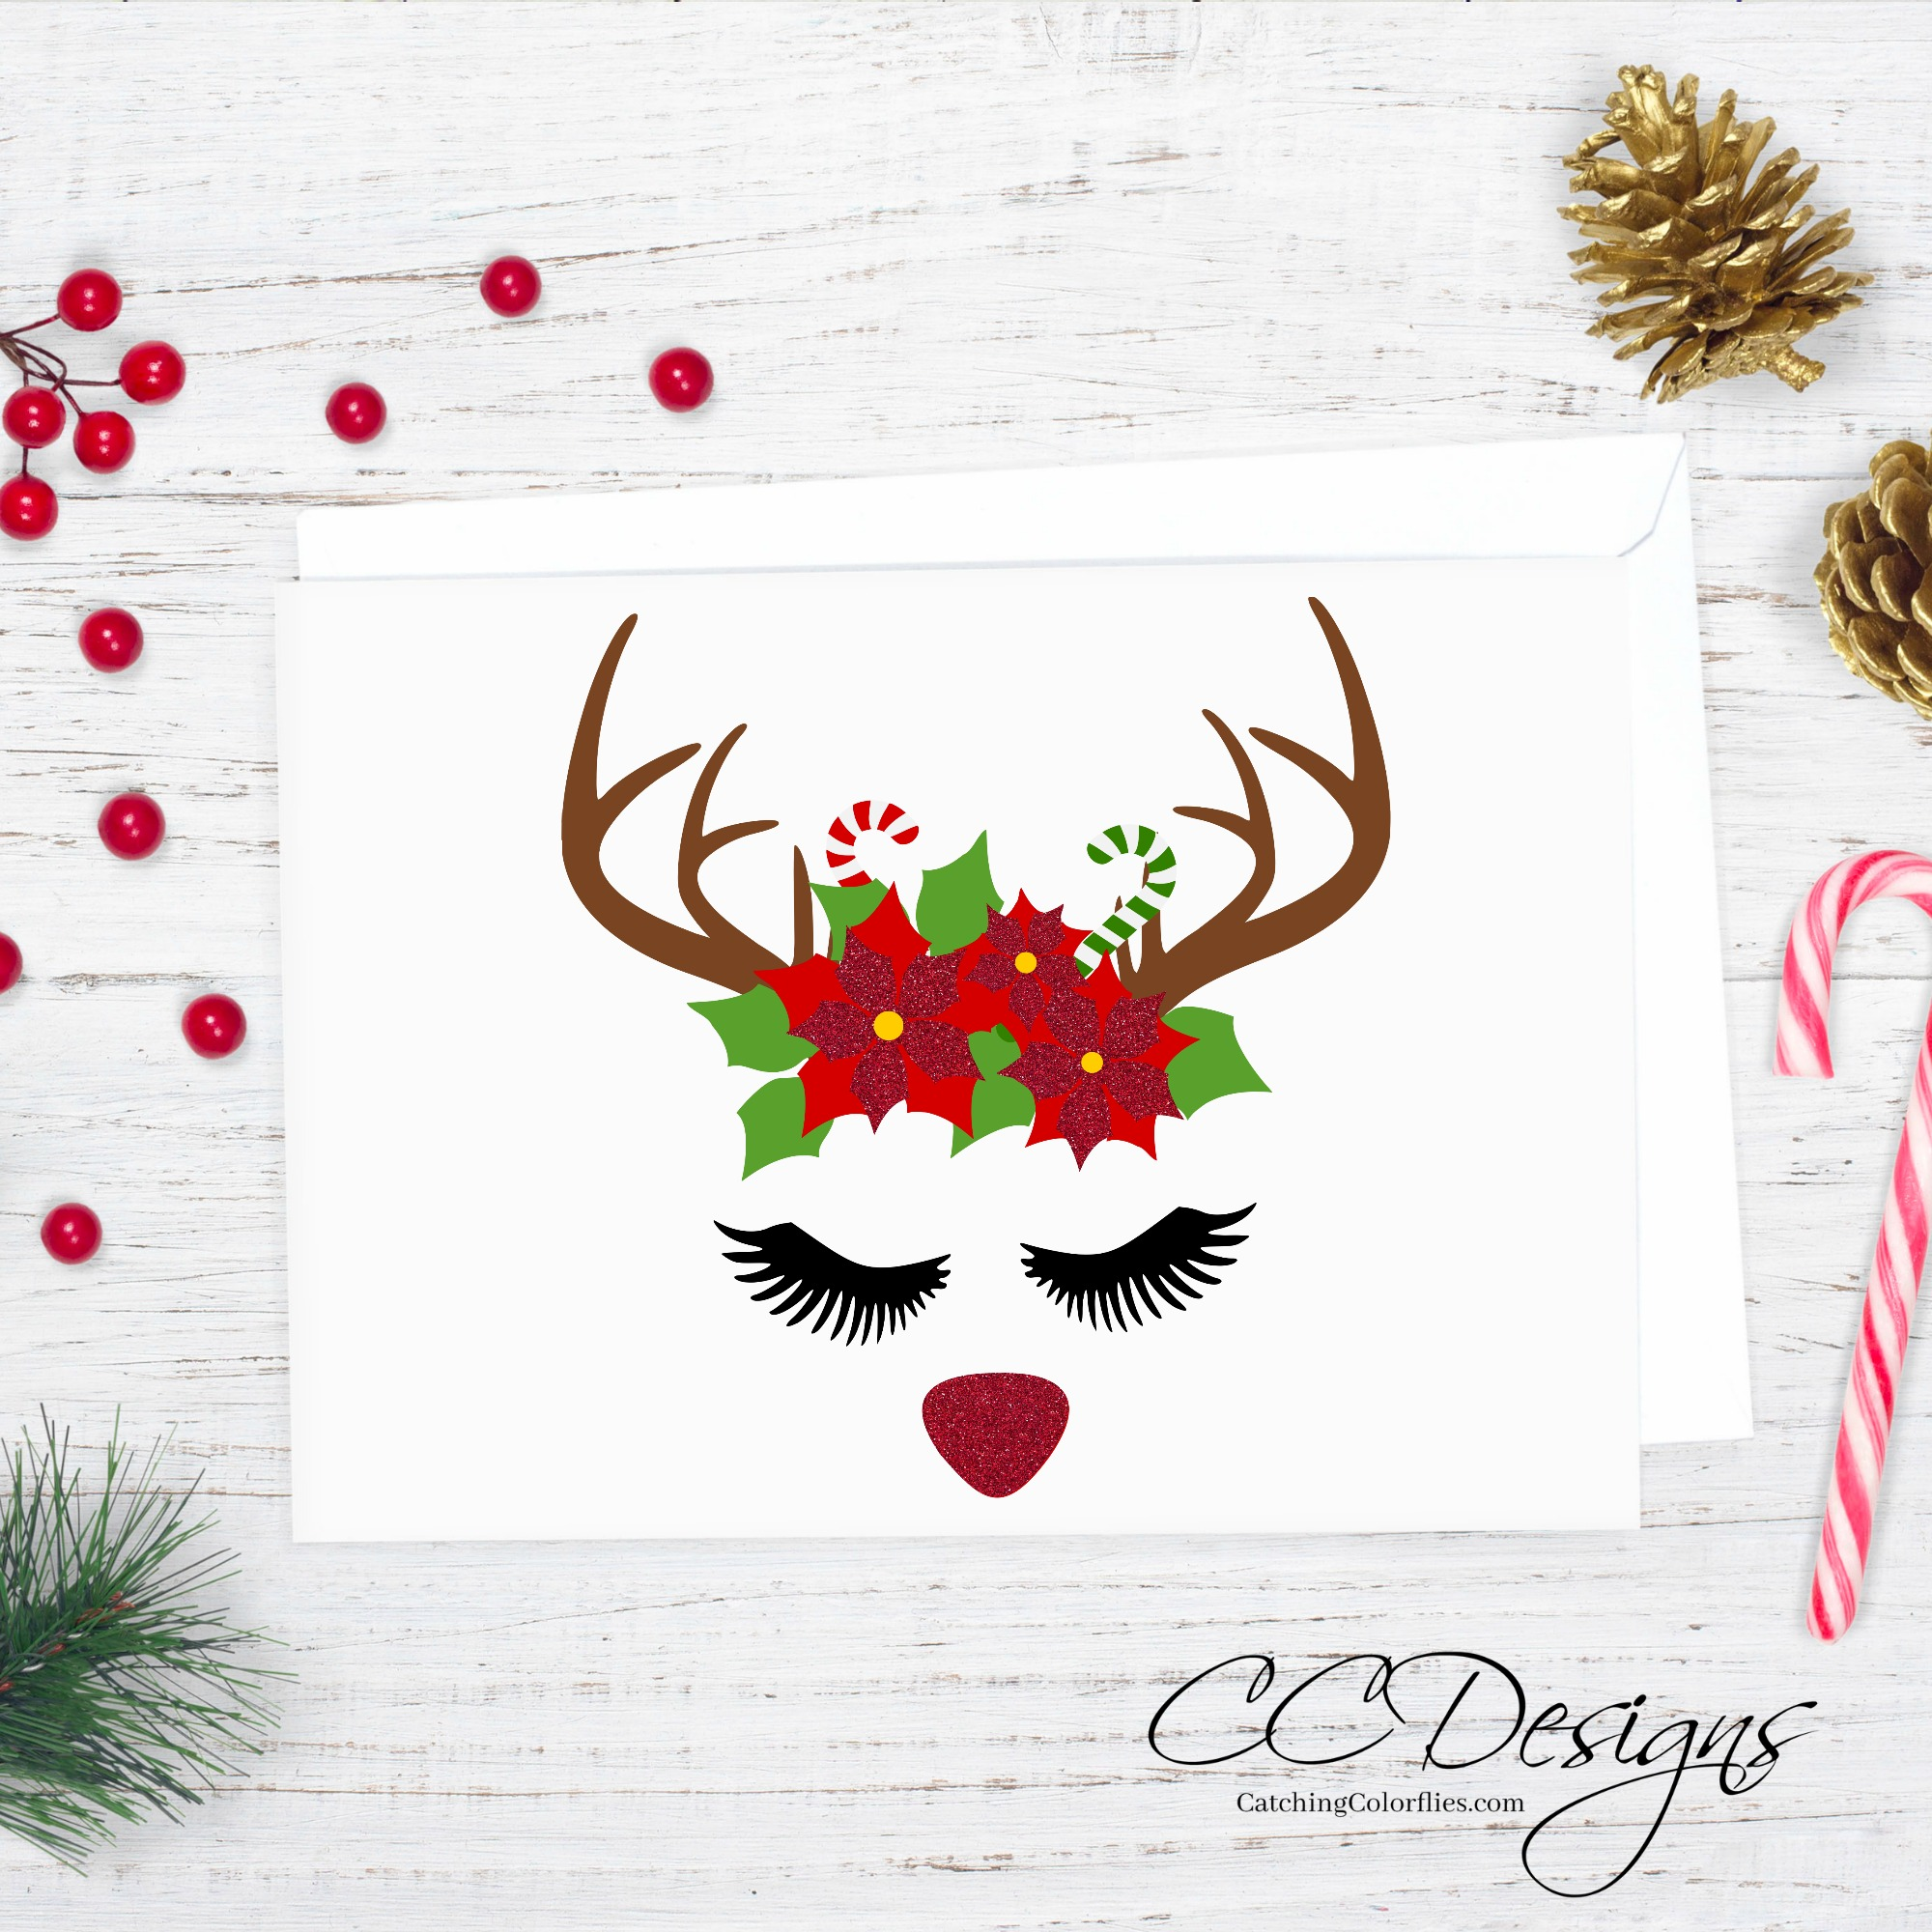 Merry Christmas! Here's a FREE Reindeer Cut File & Poinsettia Template